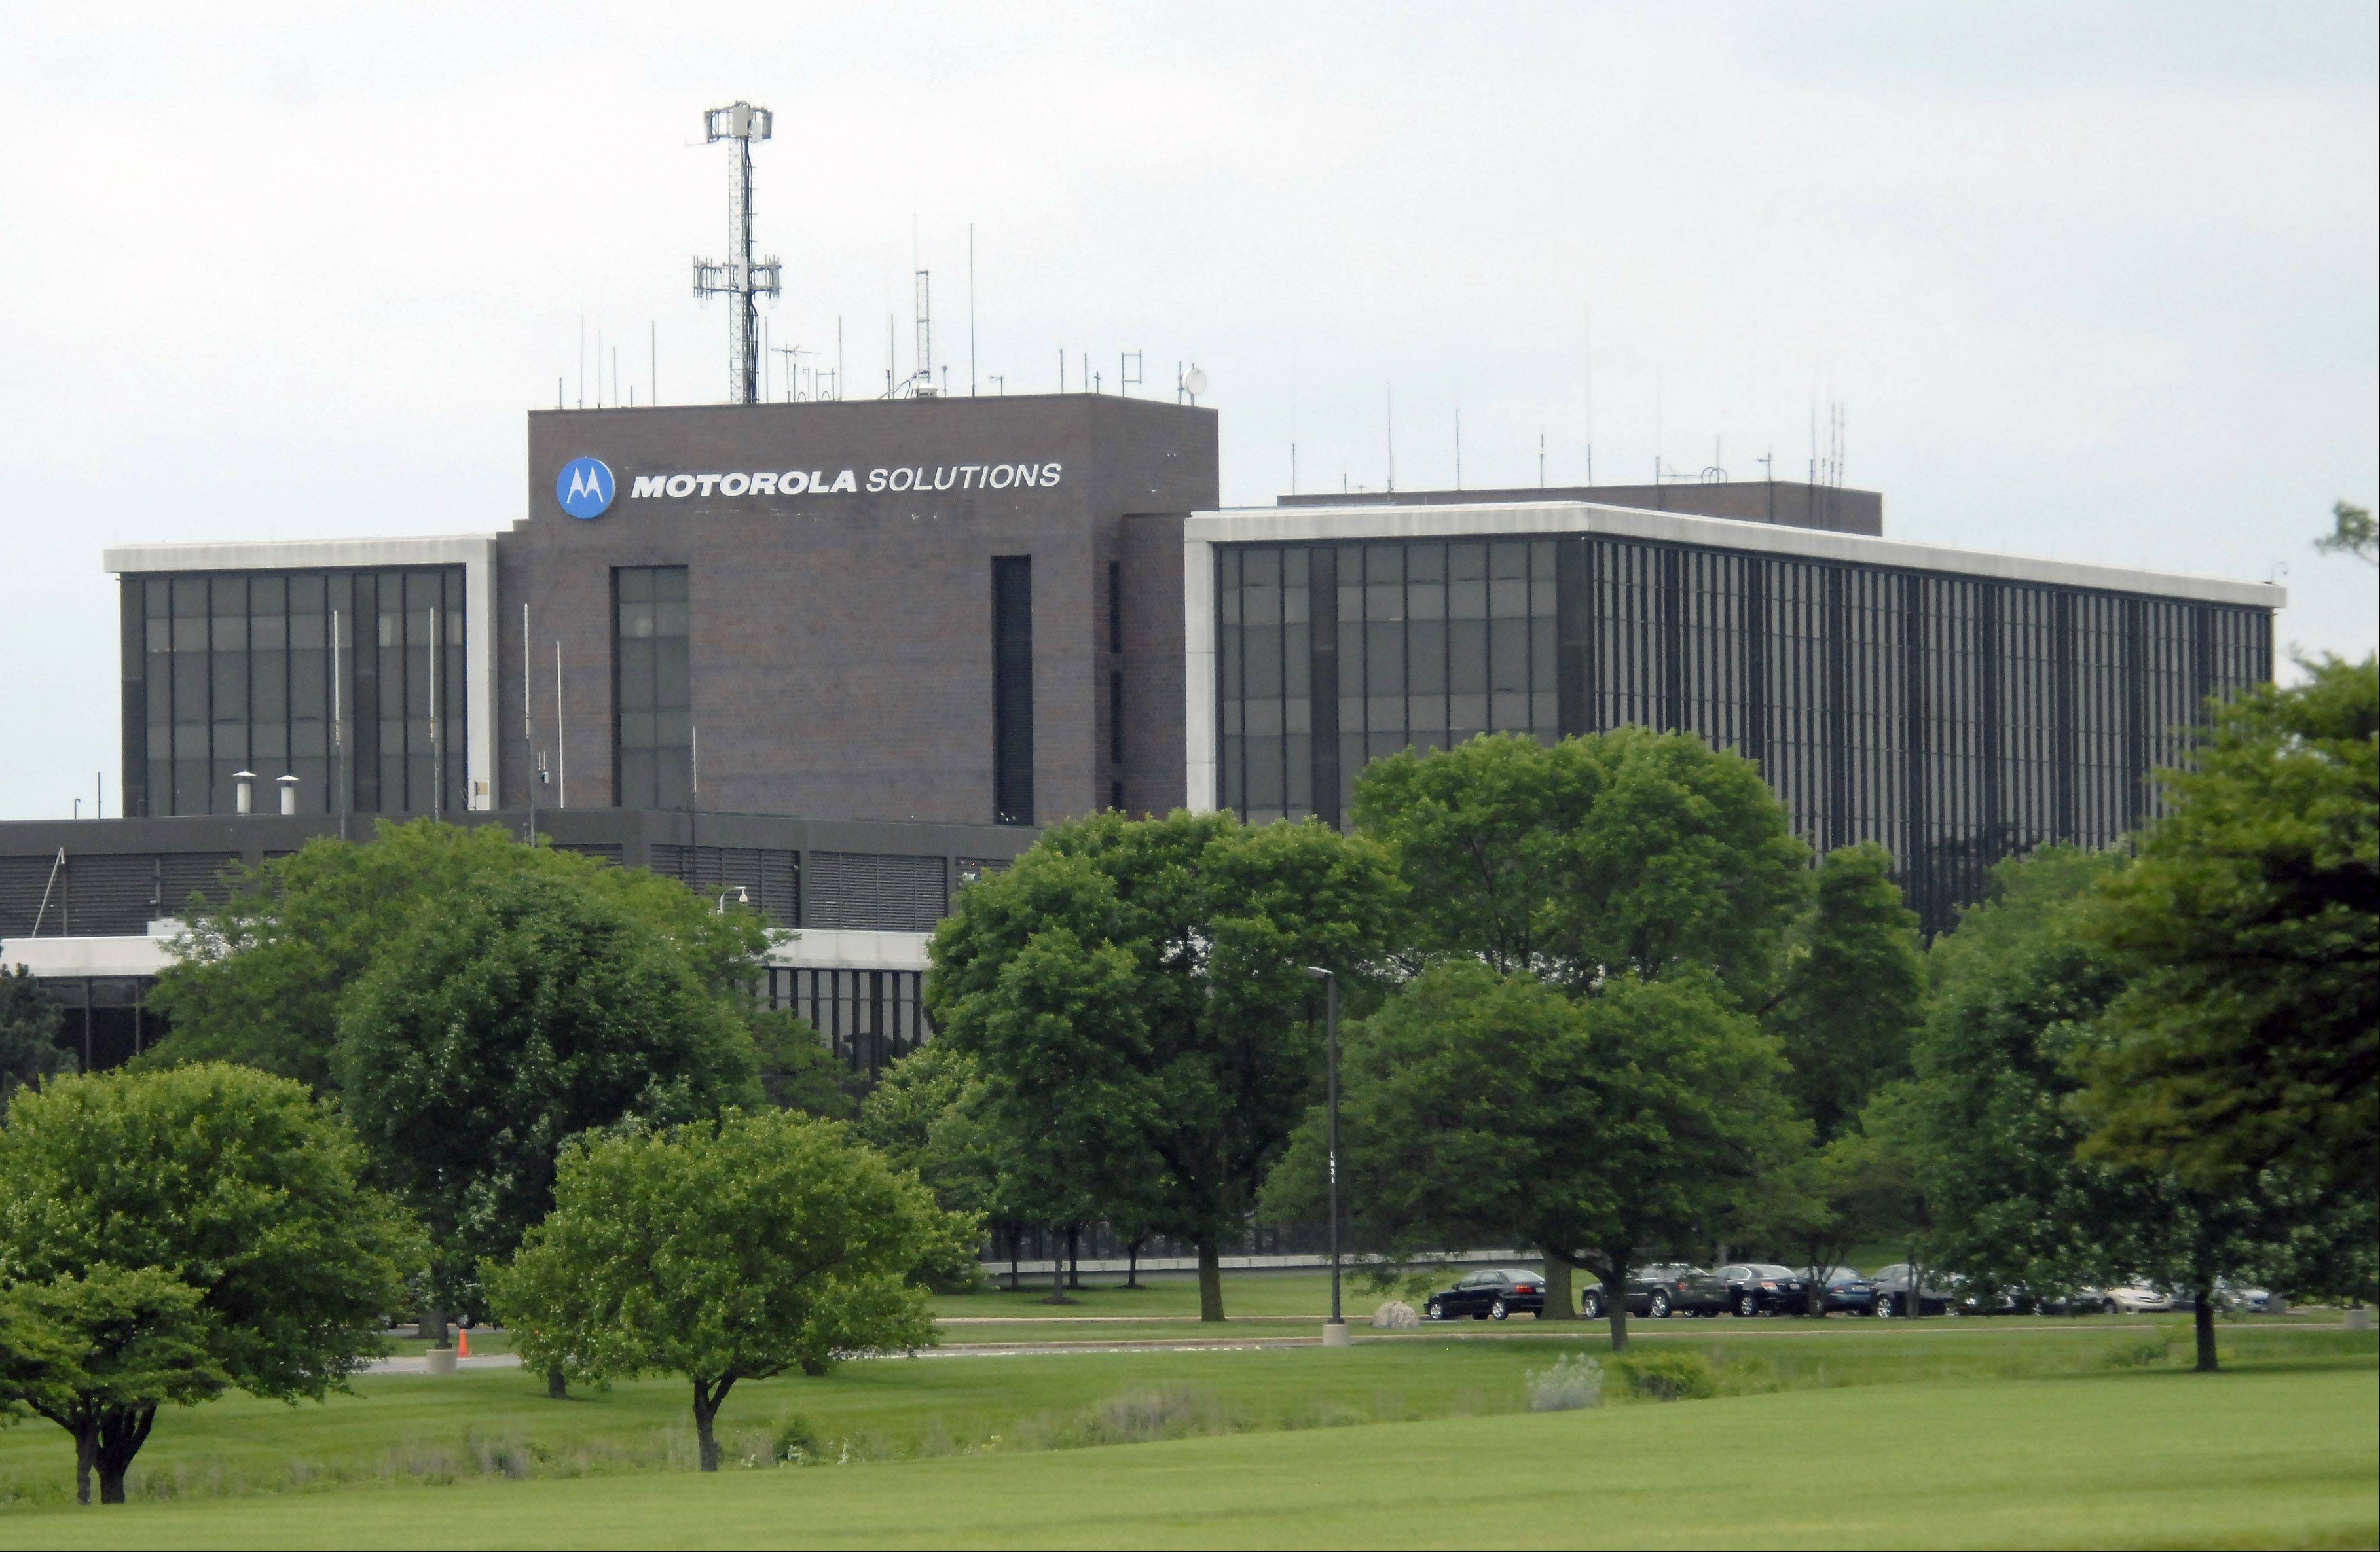 Motorola Solutions' campus in Schaumburg is nearly 50 years old.